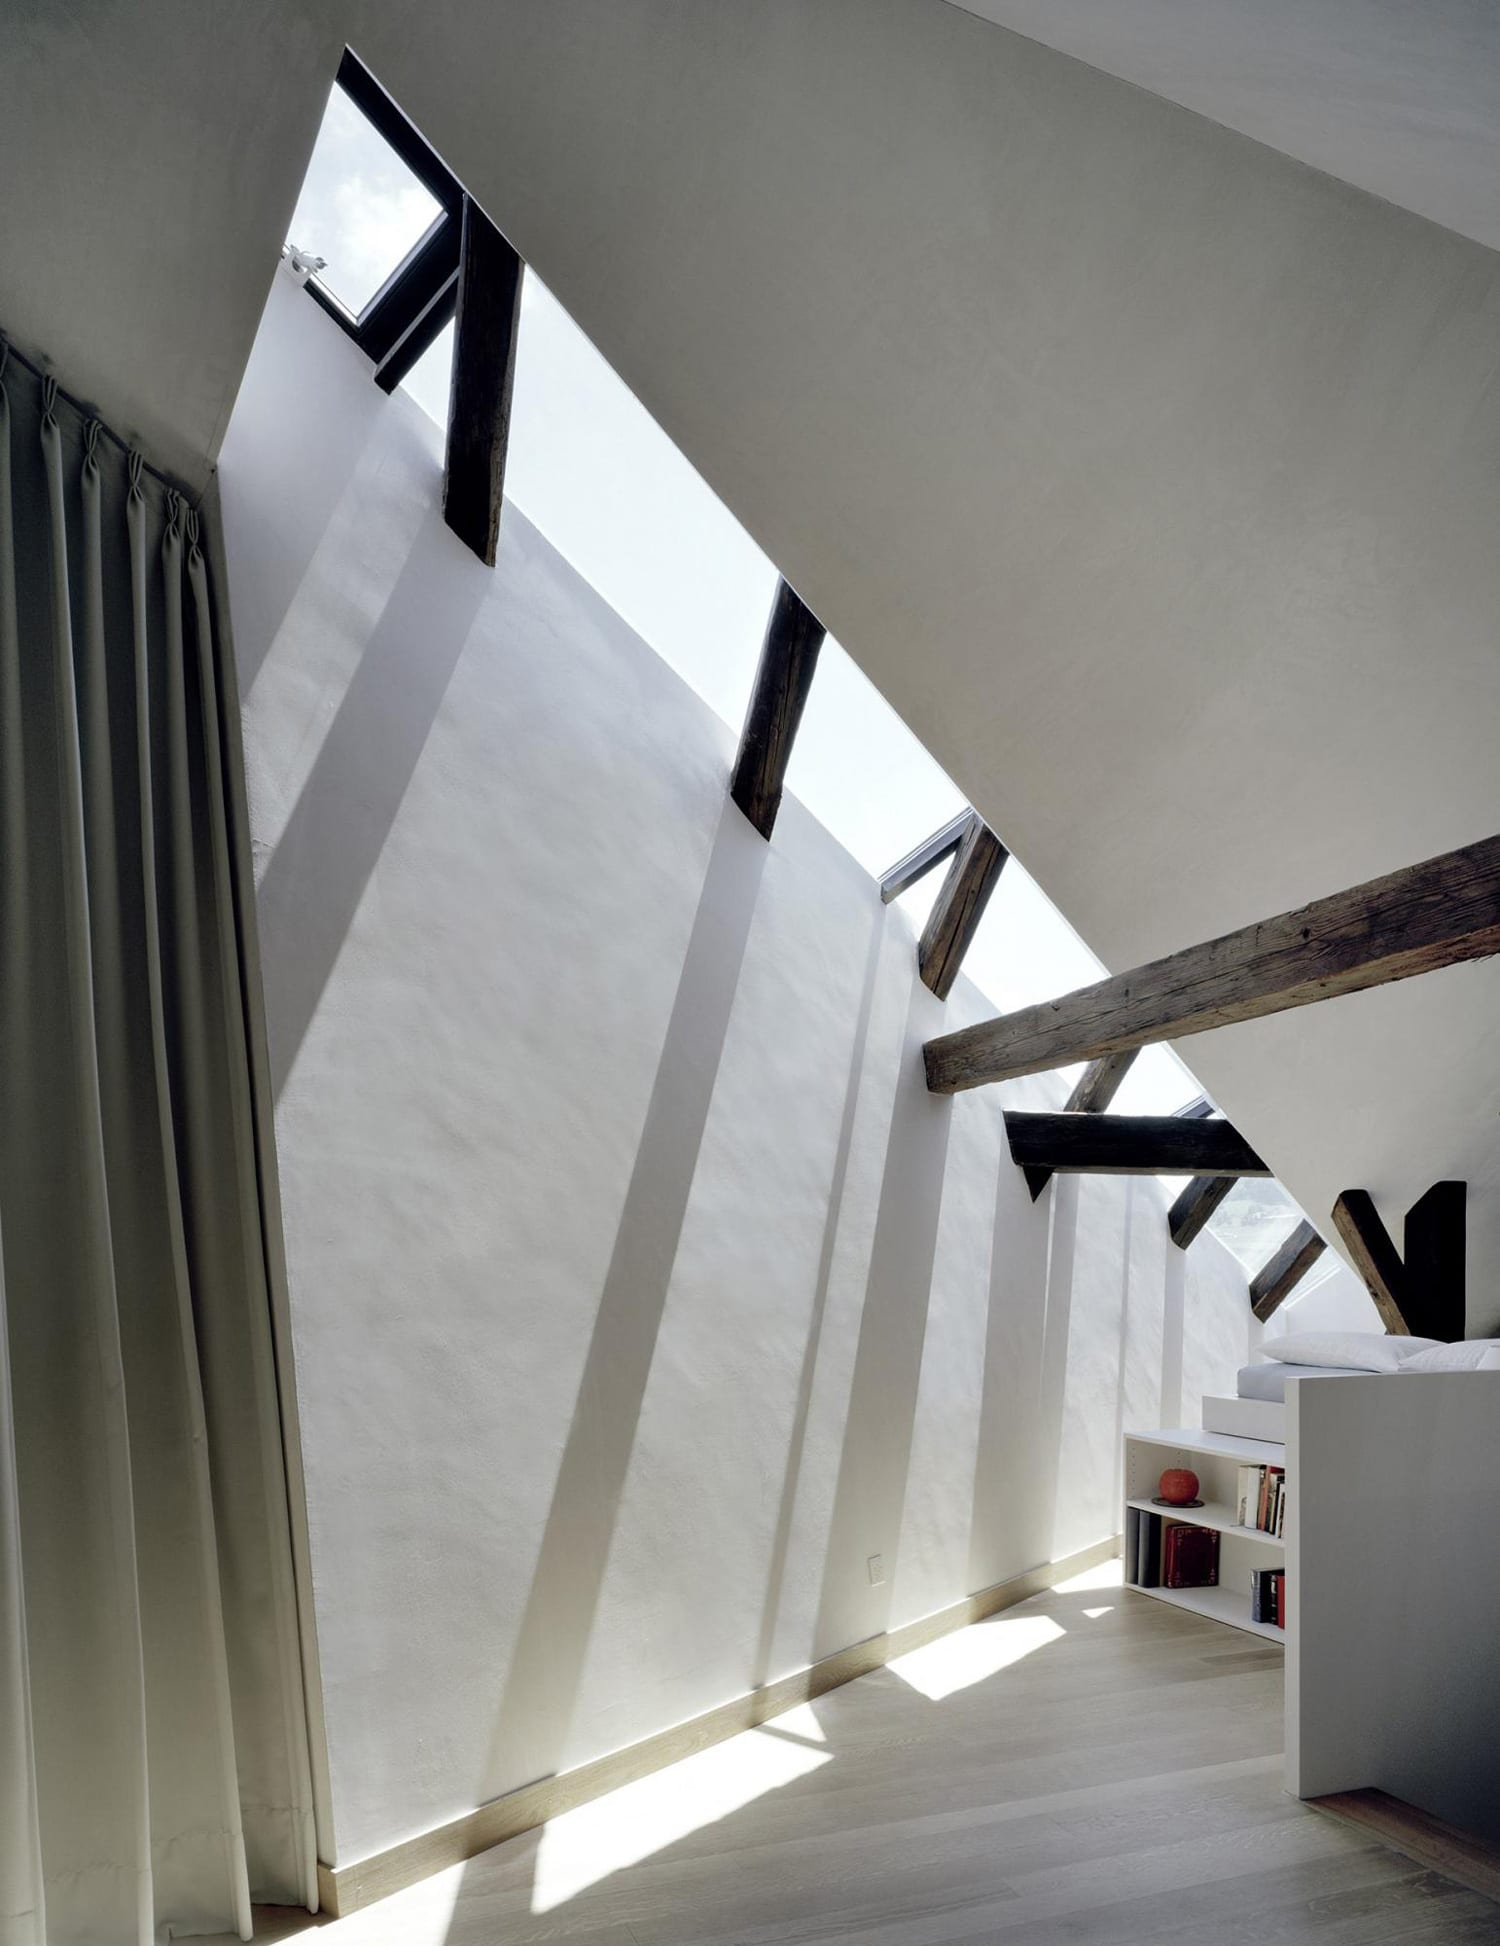 Attic Expansion in Altstadt by Freiluft | Yellowtrace